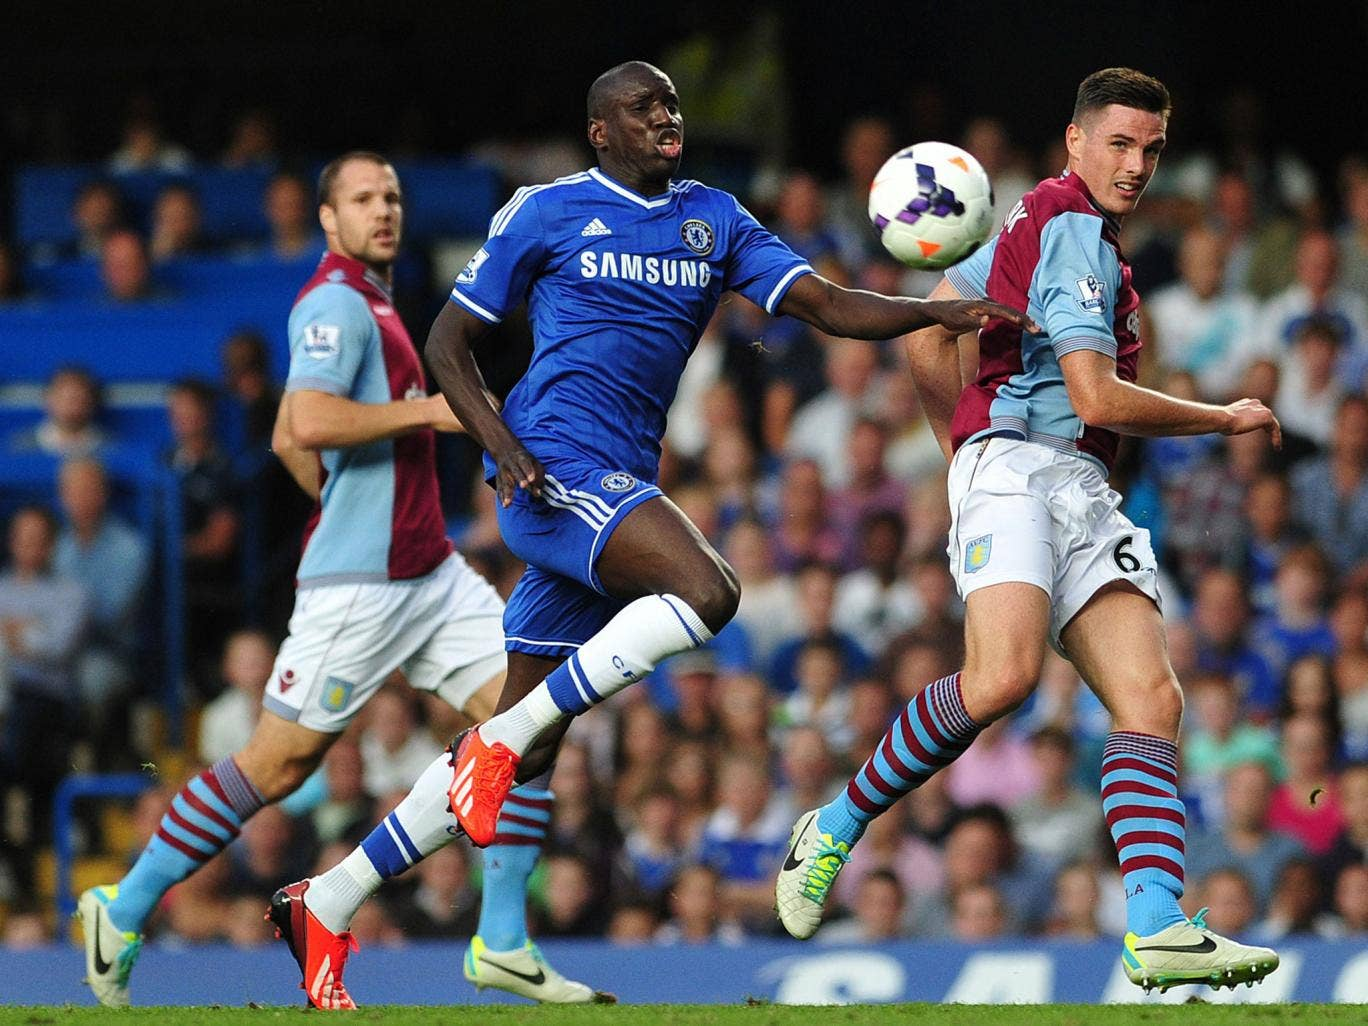 West Ham could bring Demba Ba back to the club from Chelsea